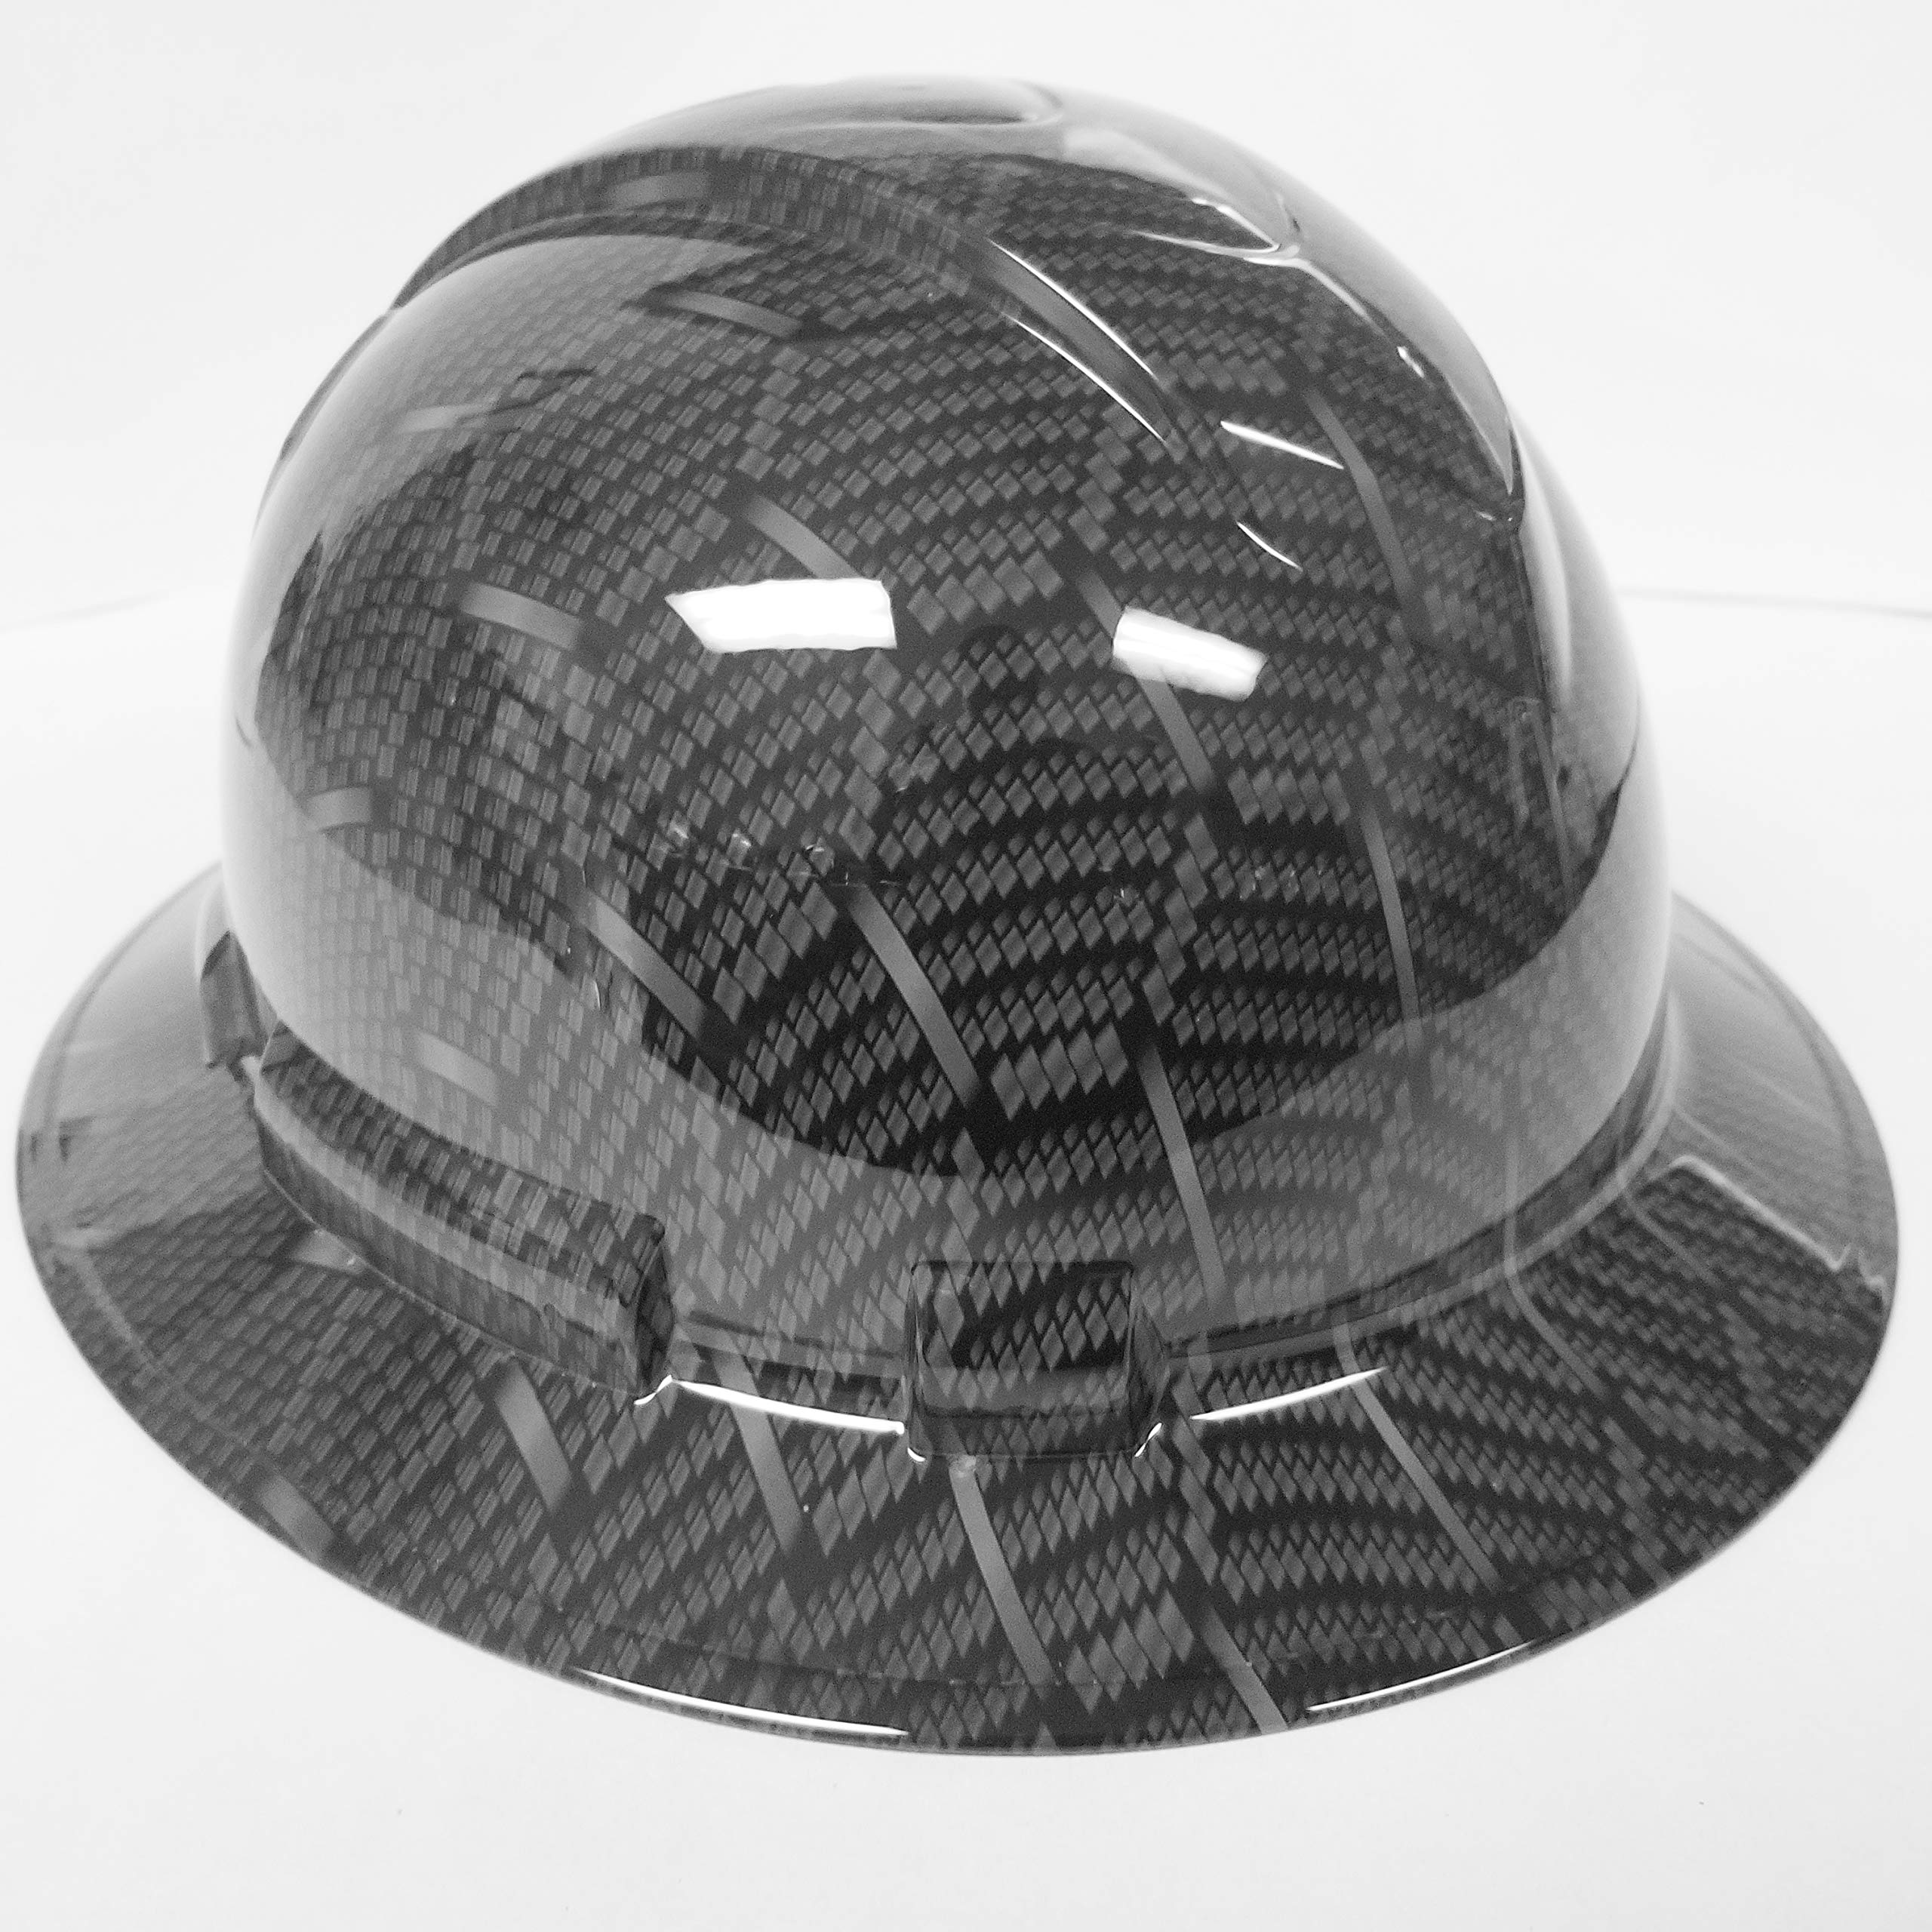 Wet Works Imaging Customized Pyramex Full Brim HEX Weave Carbon Fiber 3D Limited Hard HAT with Ratcheting Suspension Custom LIDS Crazy Sick Construction PPE by Wet Works Imaging (Image #3)